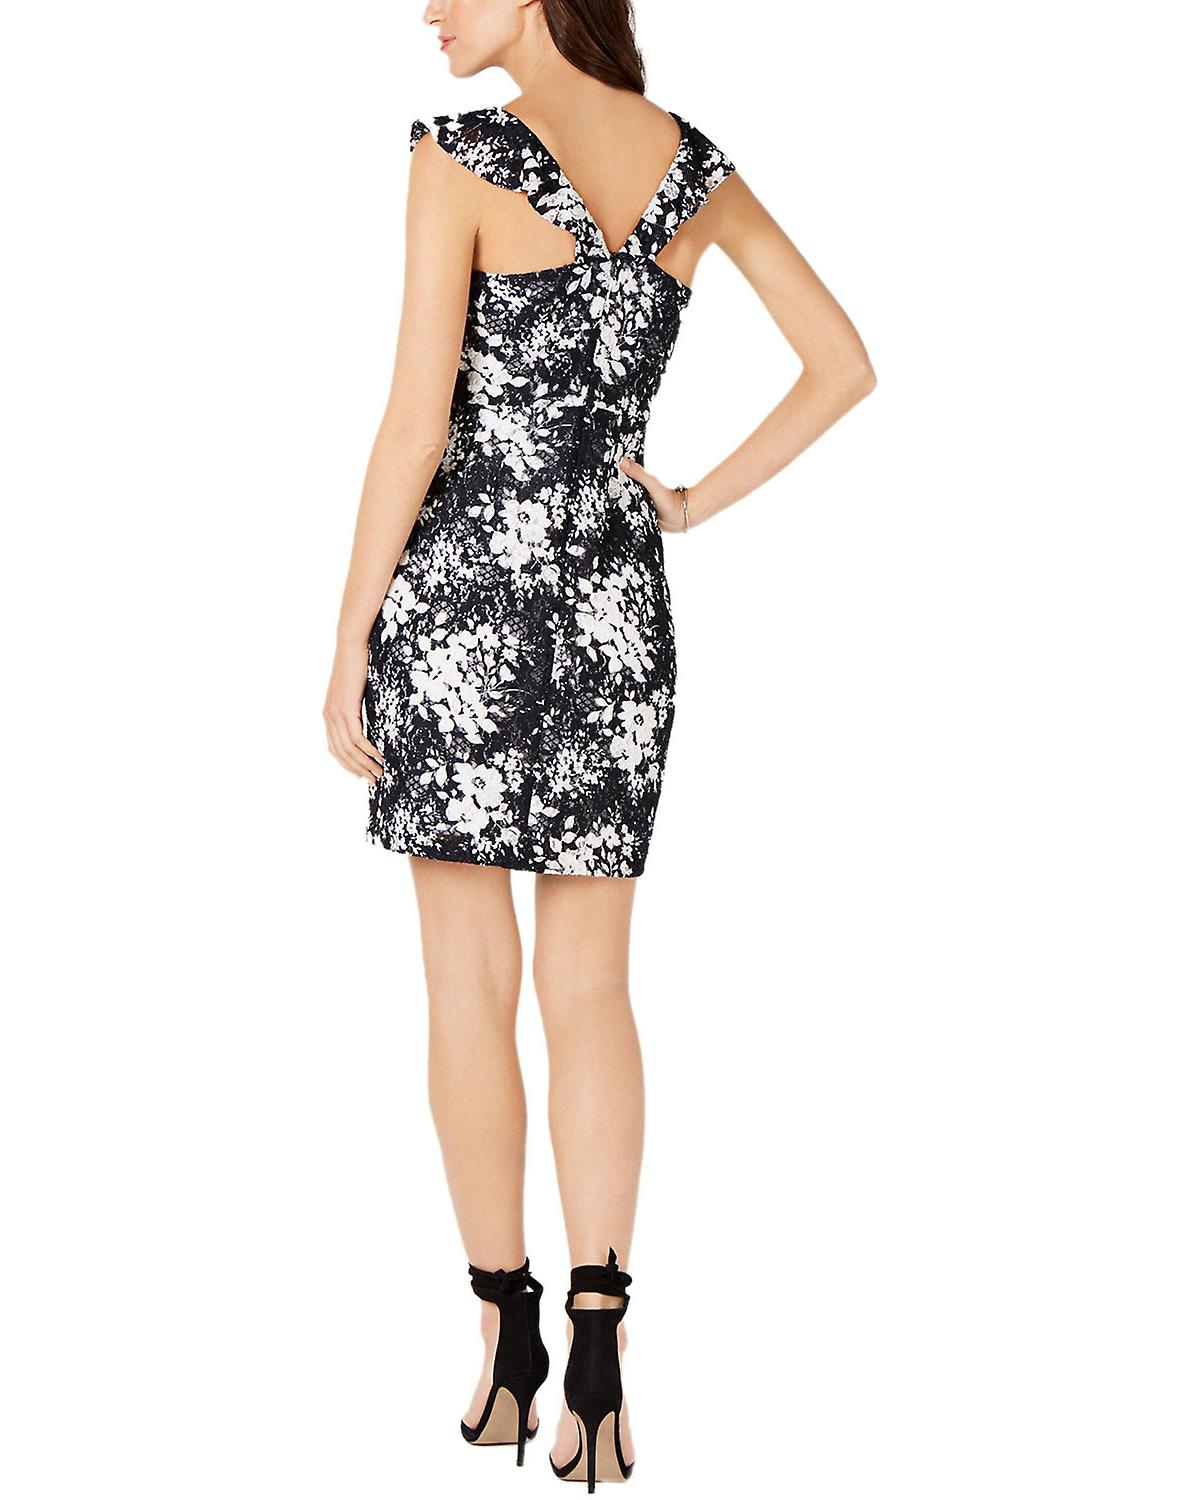 GUESS Ruffled Floral Lace Dress